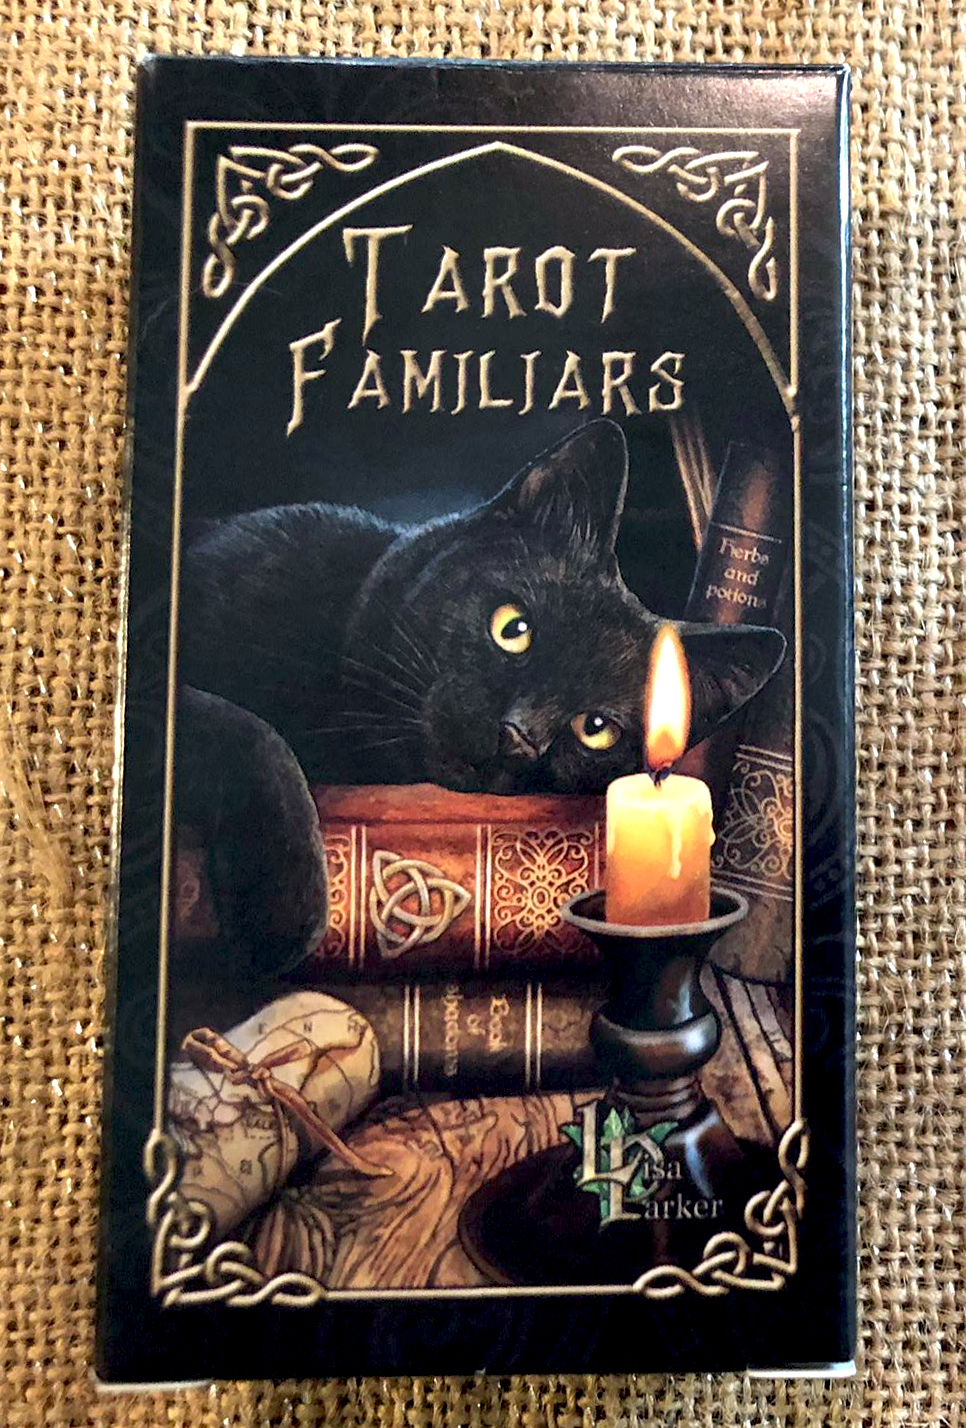 Review: 'Familiars' deck is gorgeous but falls short of perfect